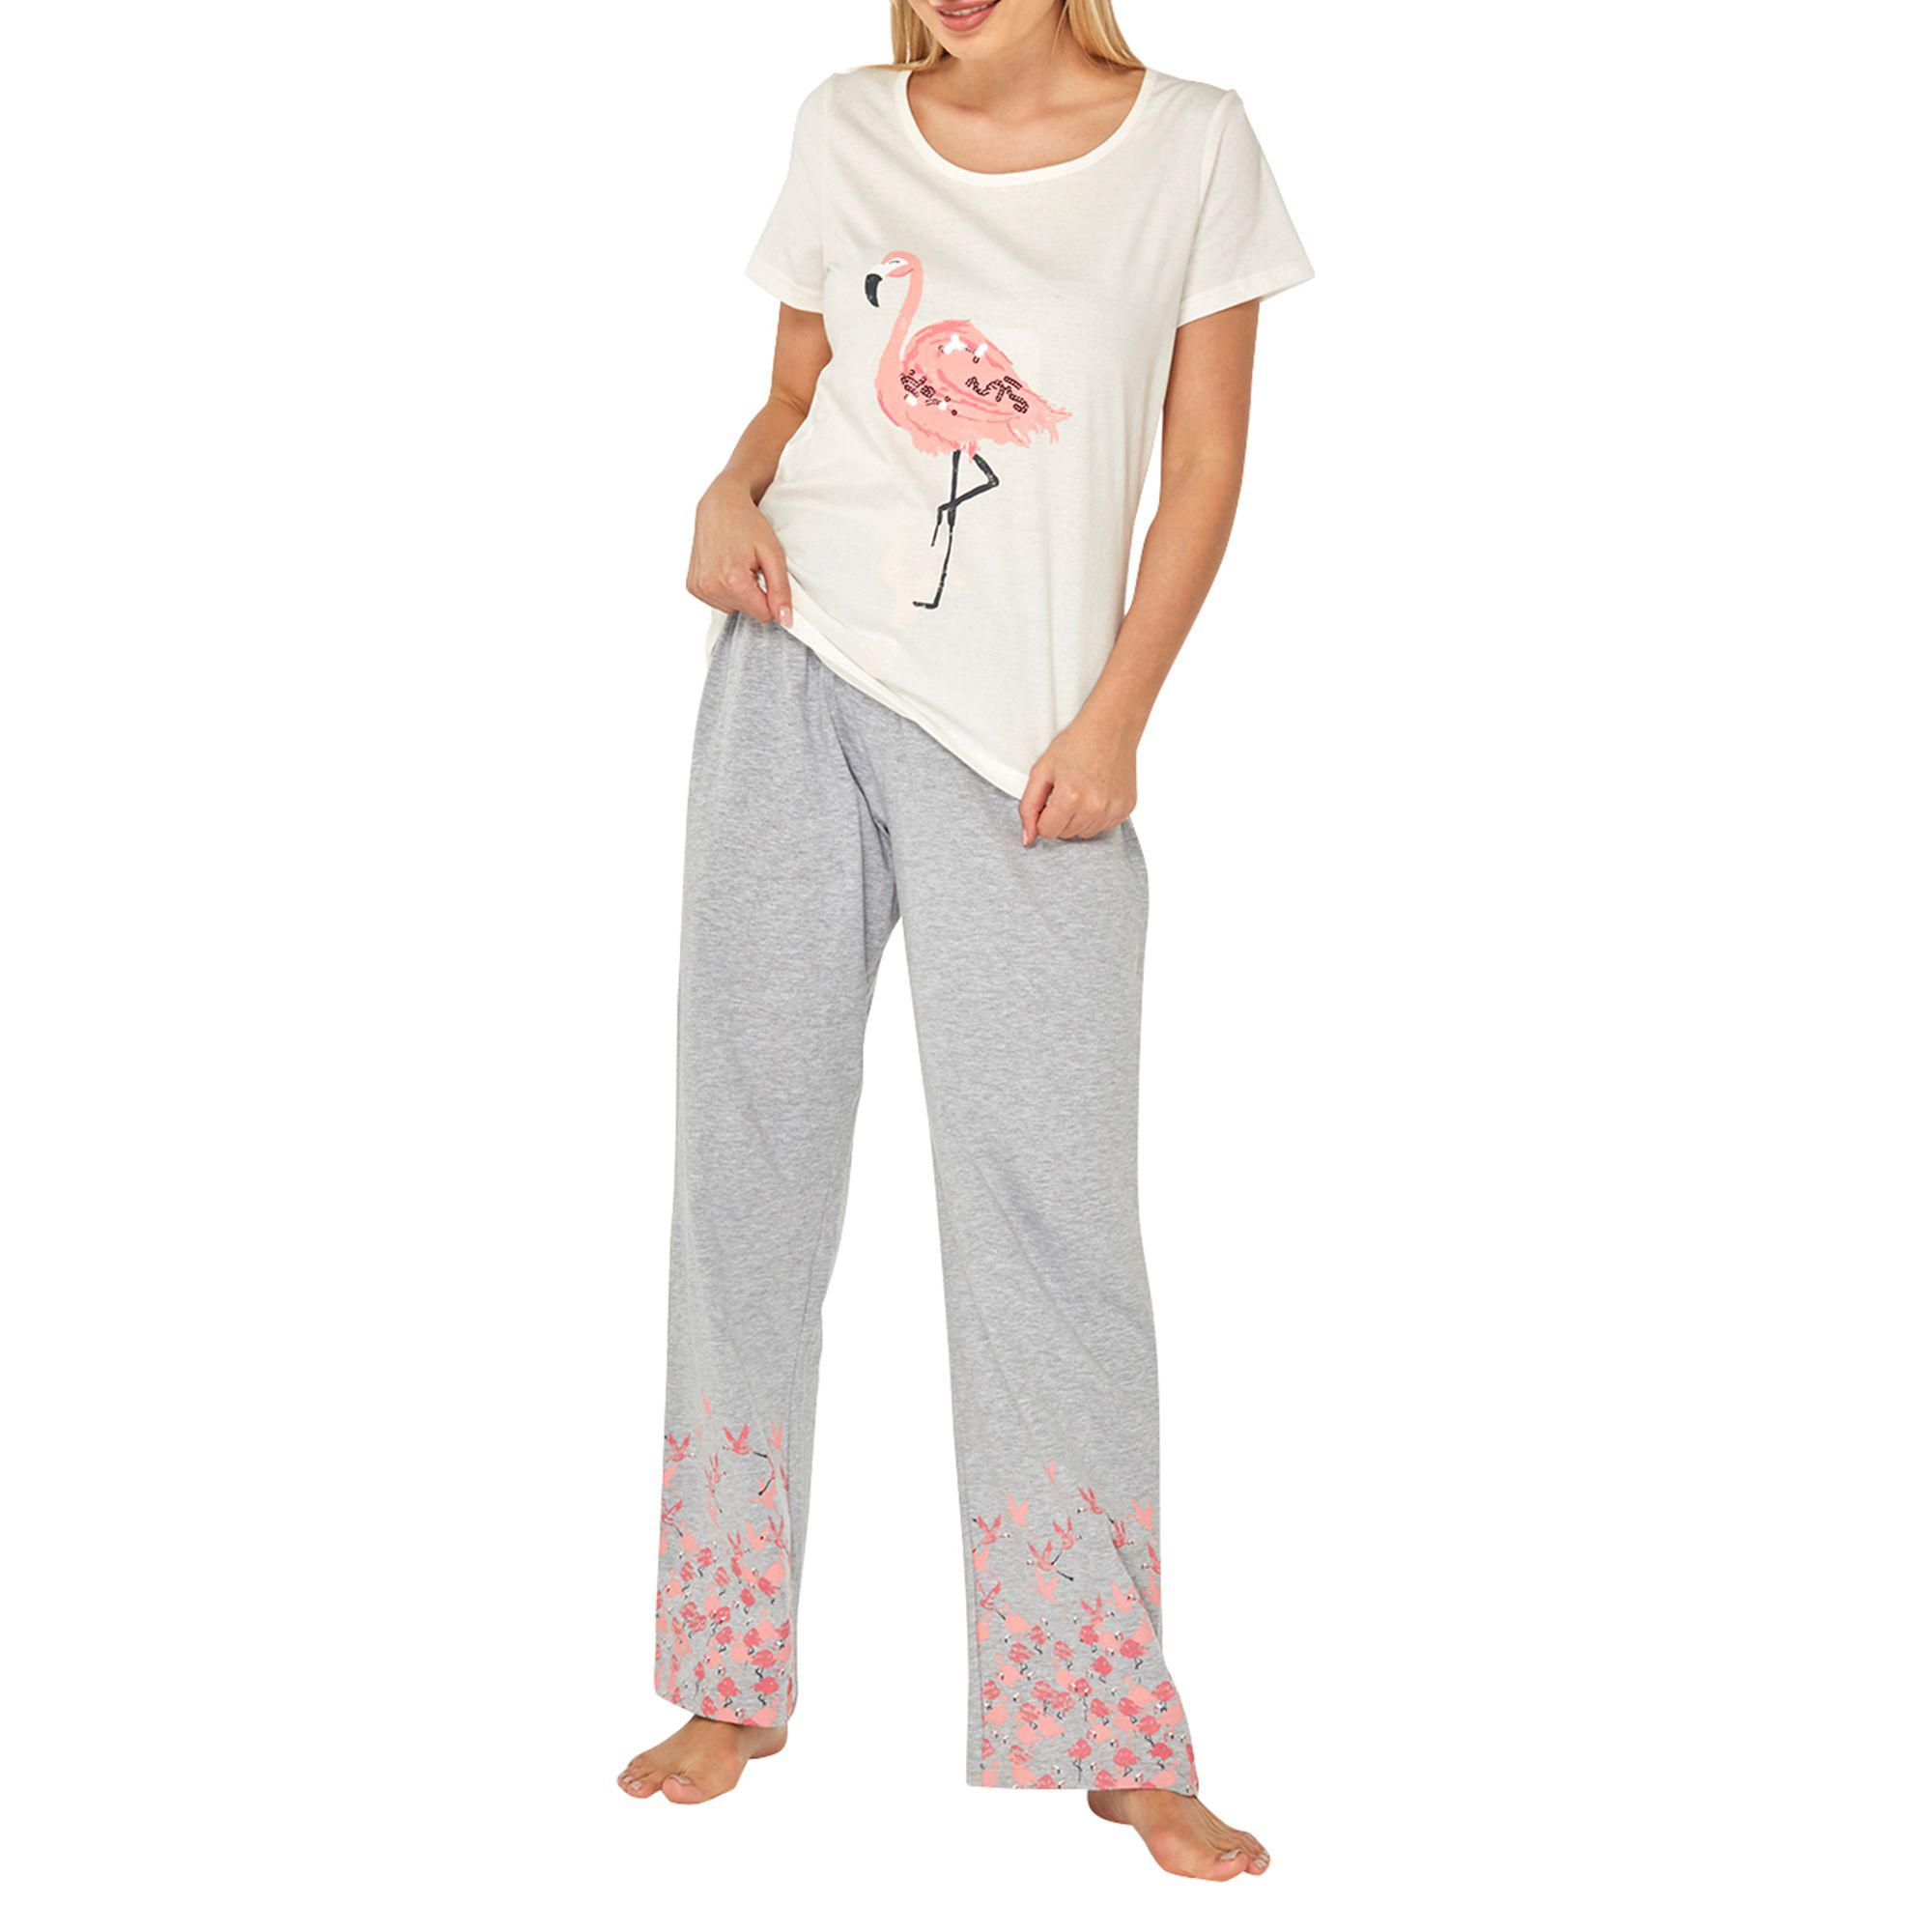 fdf520894b Dorothy Perkins Grey And Pink Flamingo Pyjama Set in Gray - Lyst